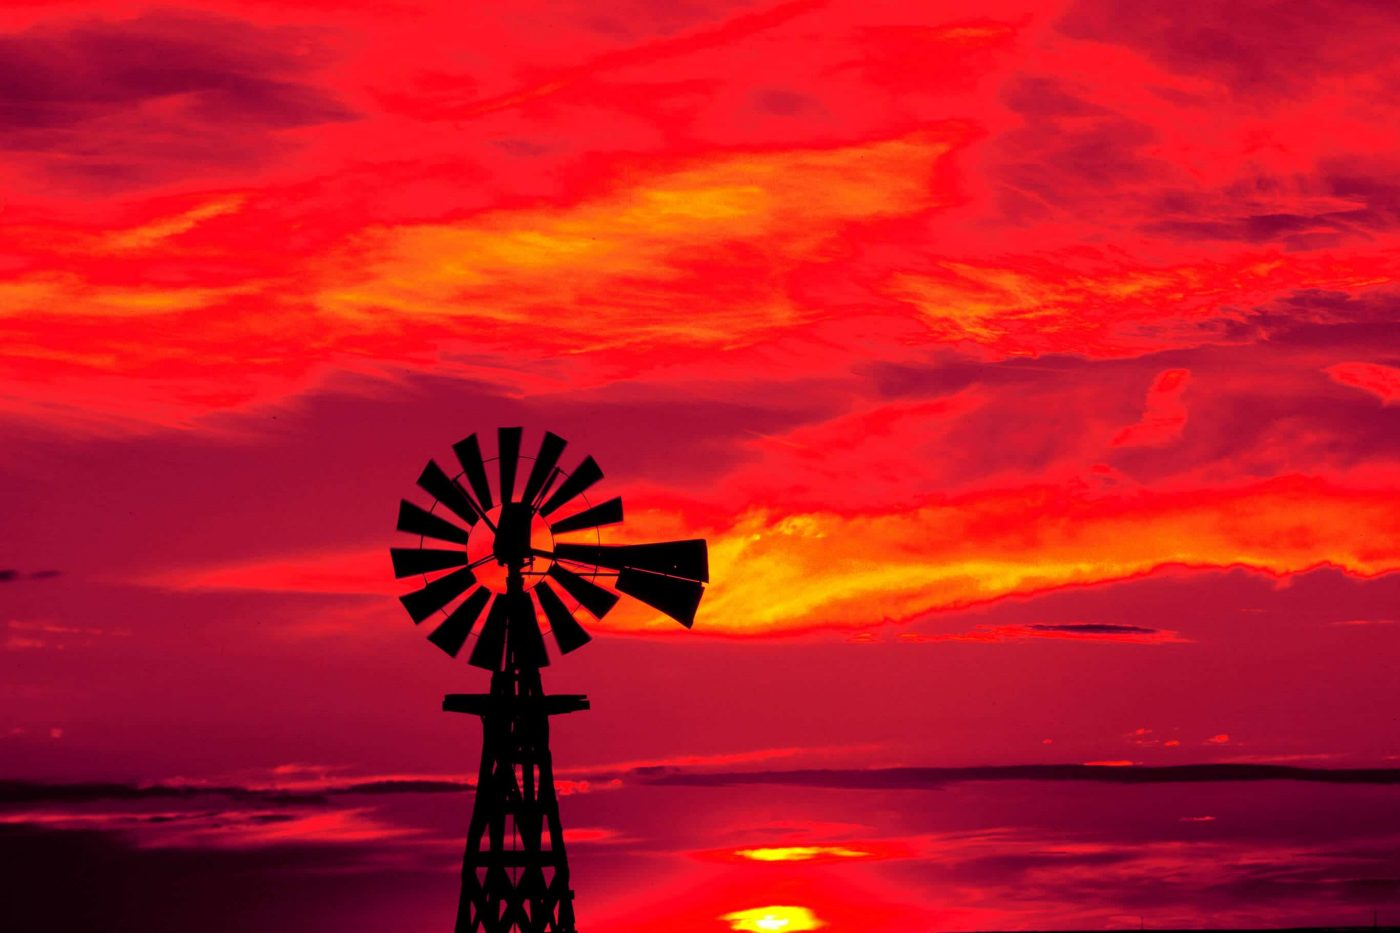 Windmill silhouetted at sunset in eastern Colorado.